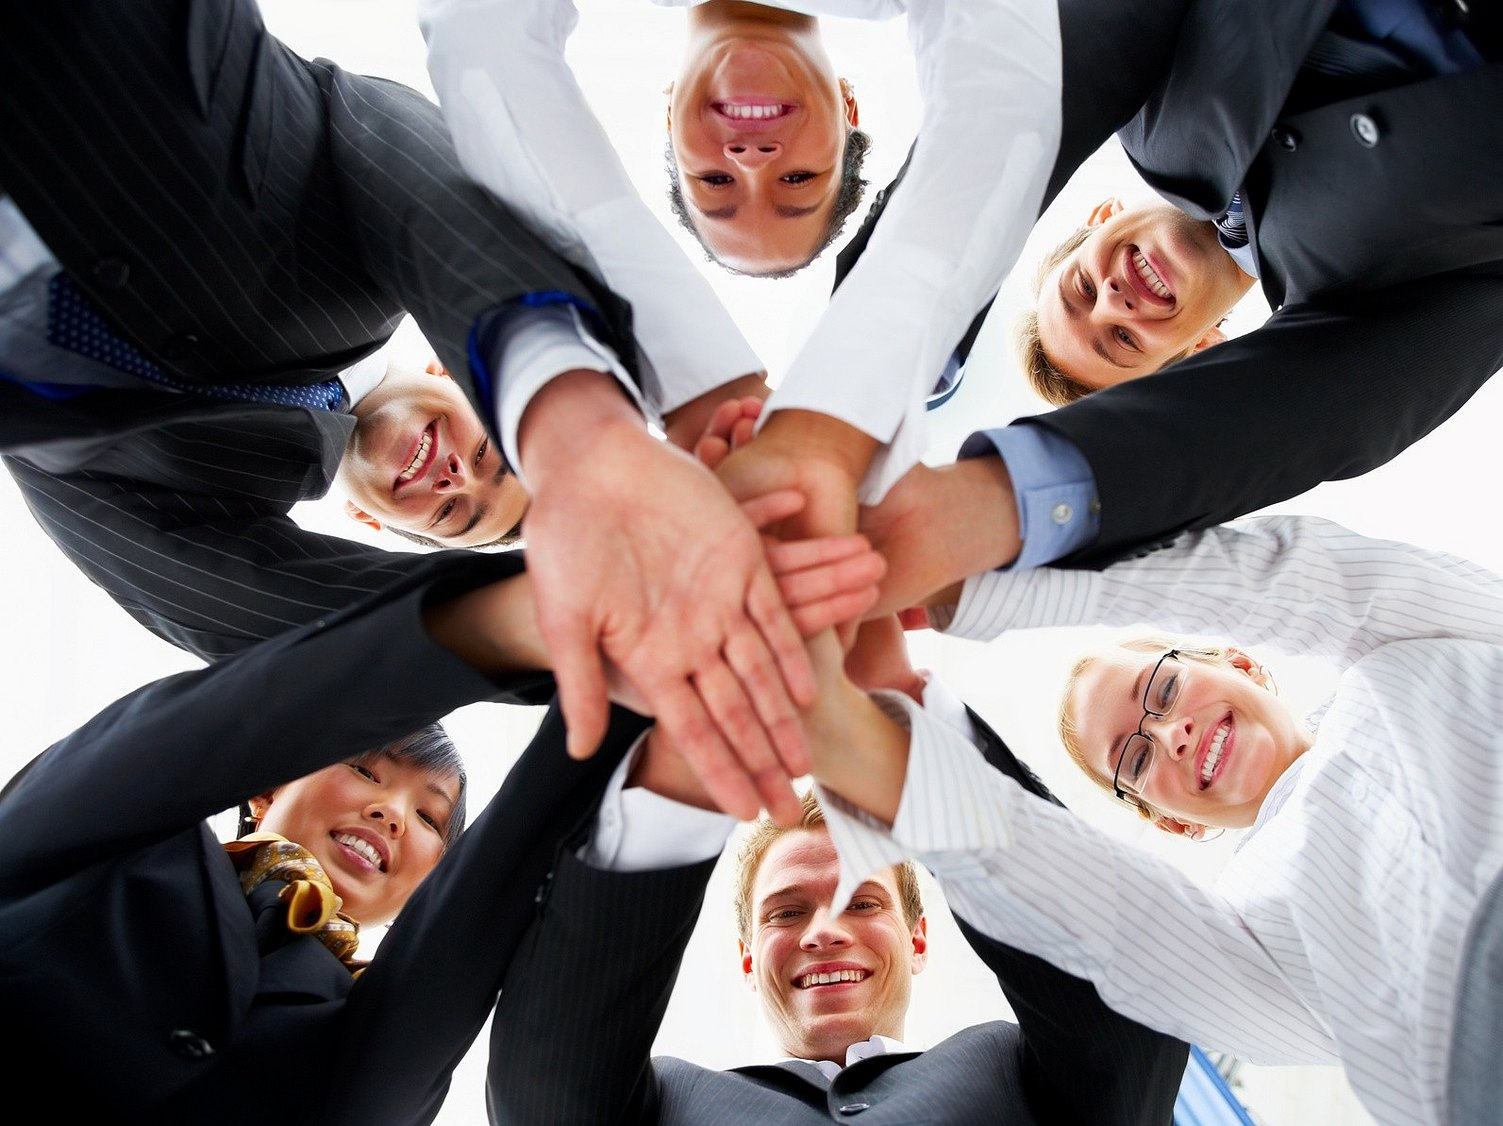 workplace wellness plans lead to improved teamwork and morale